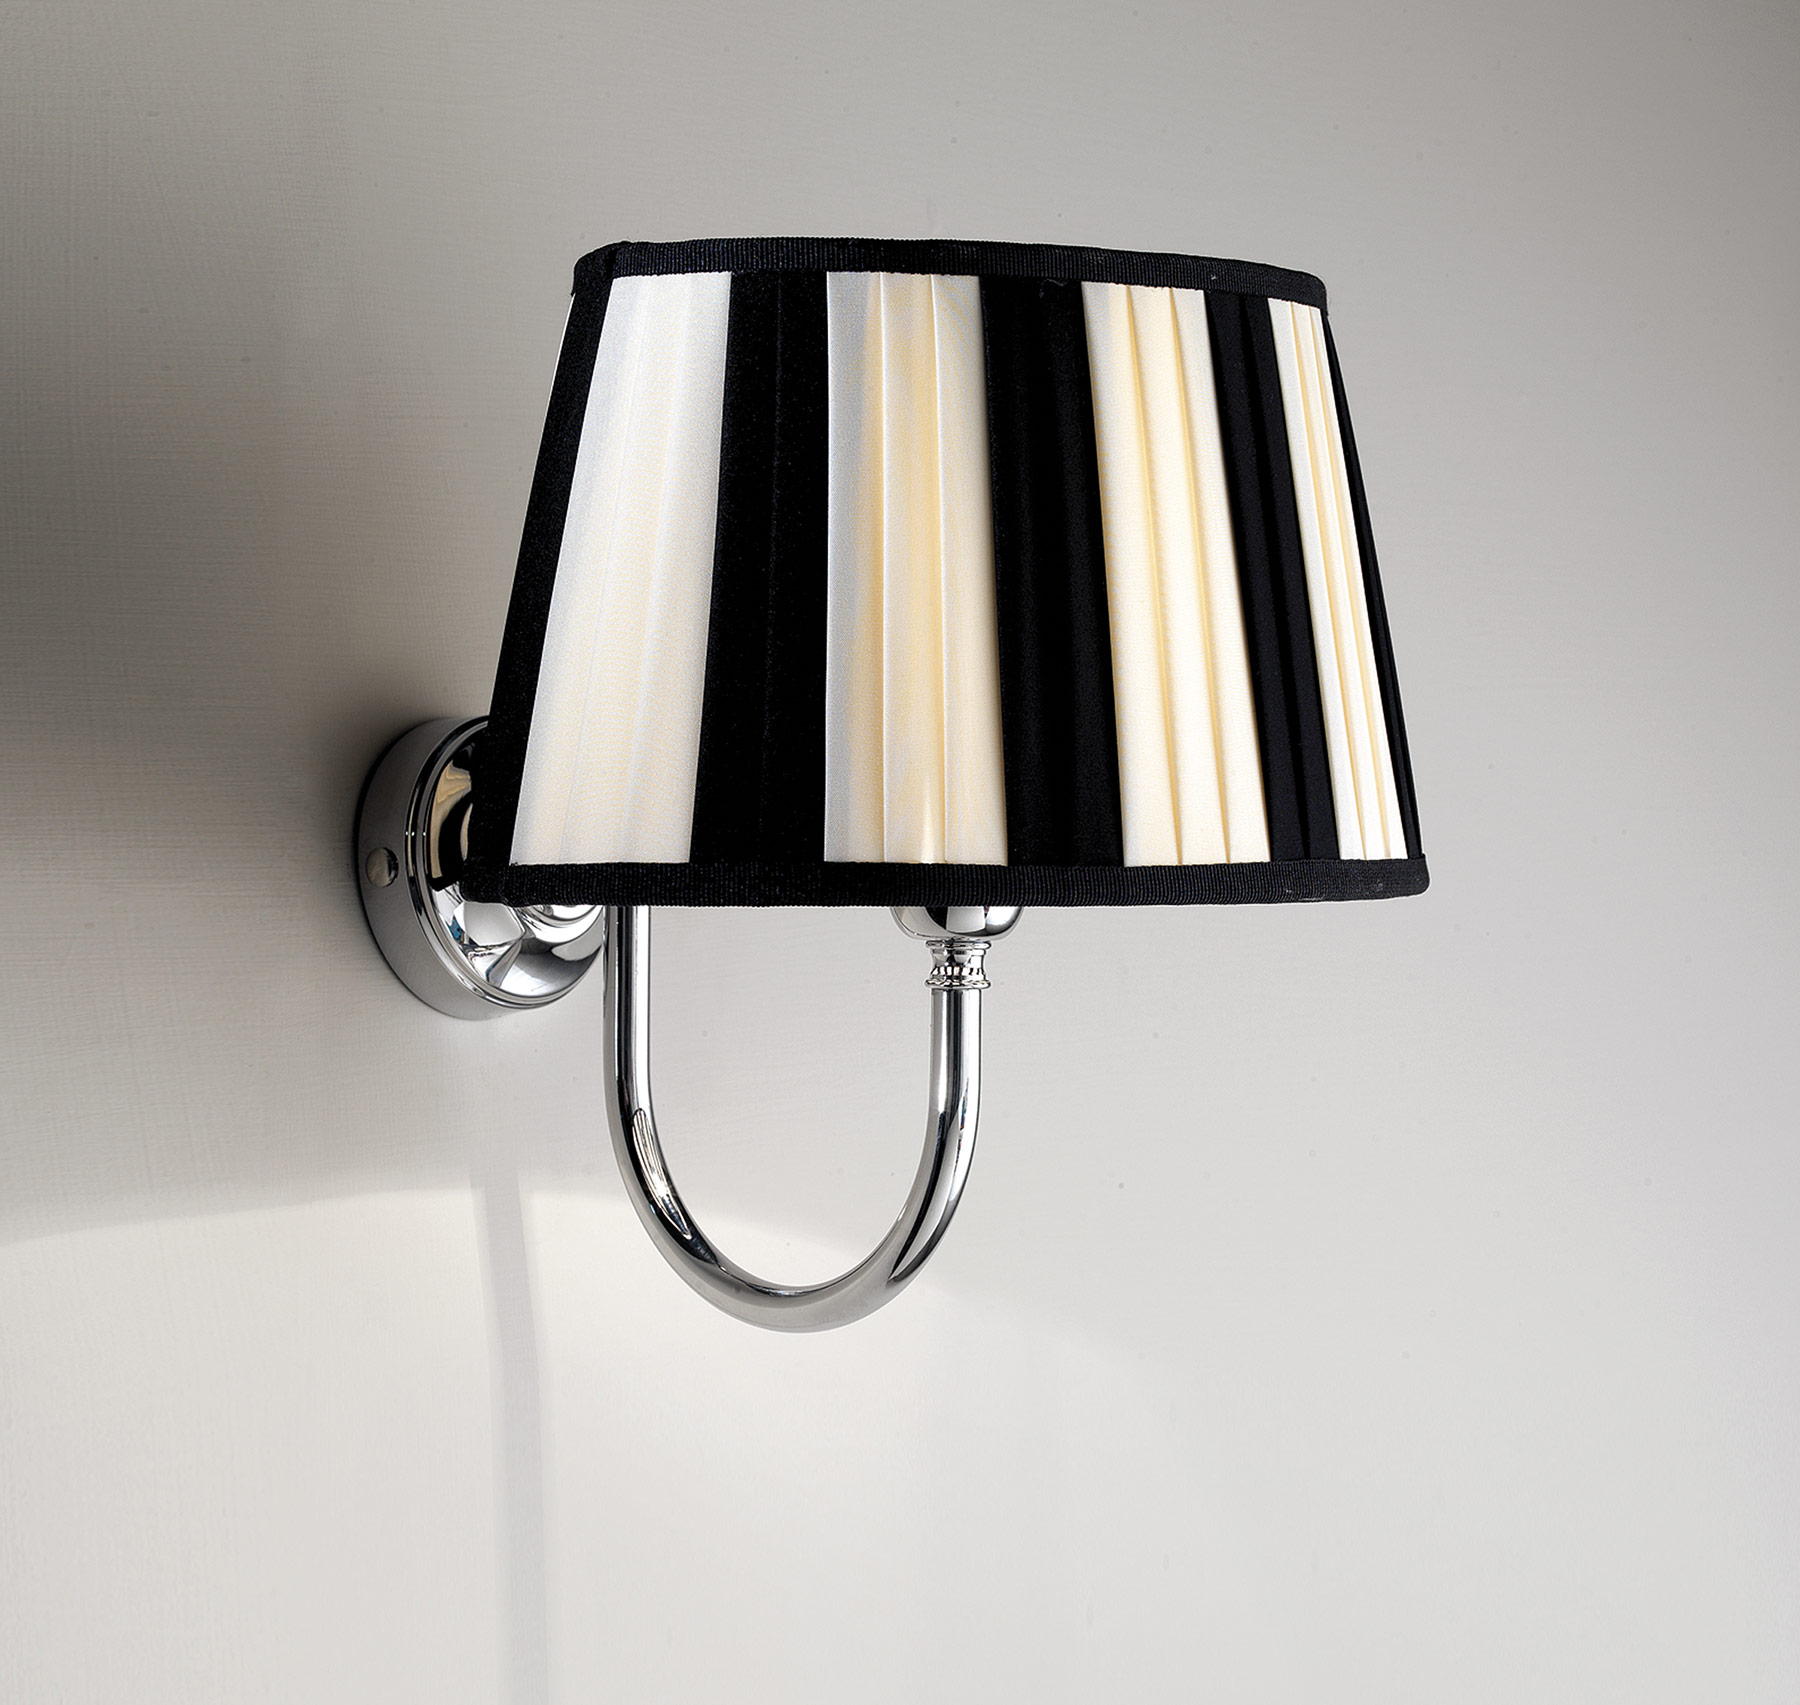 Transitional Decor Wall Mount Lamp